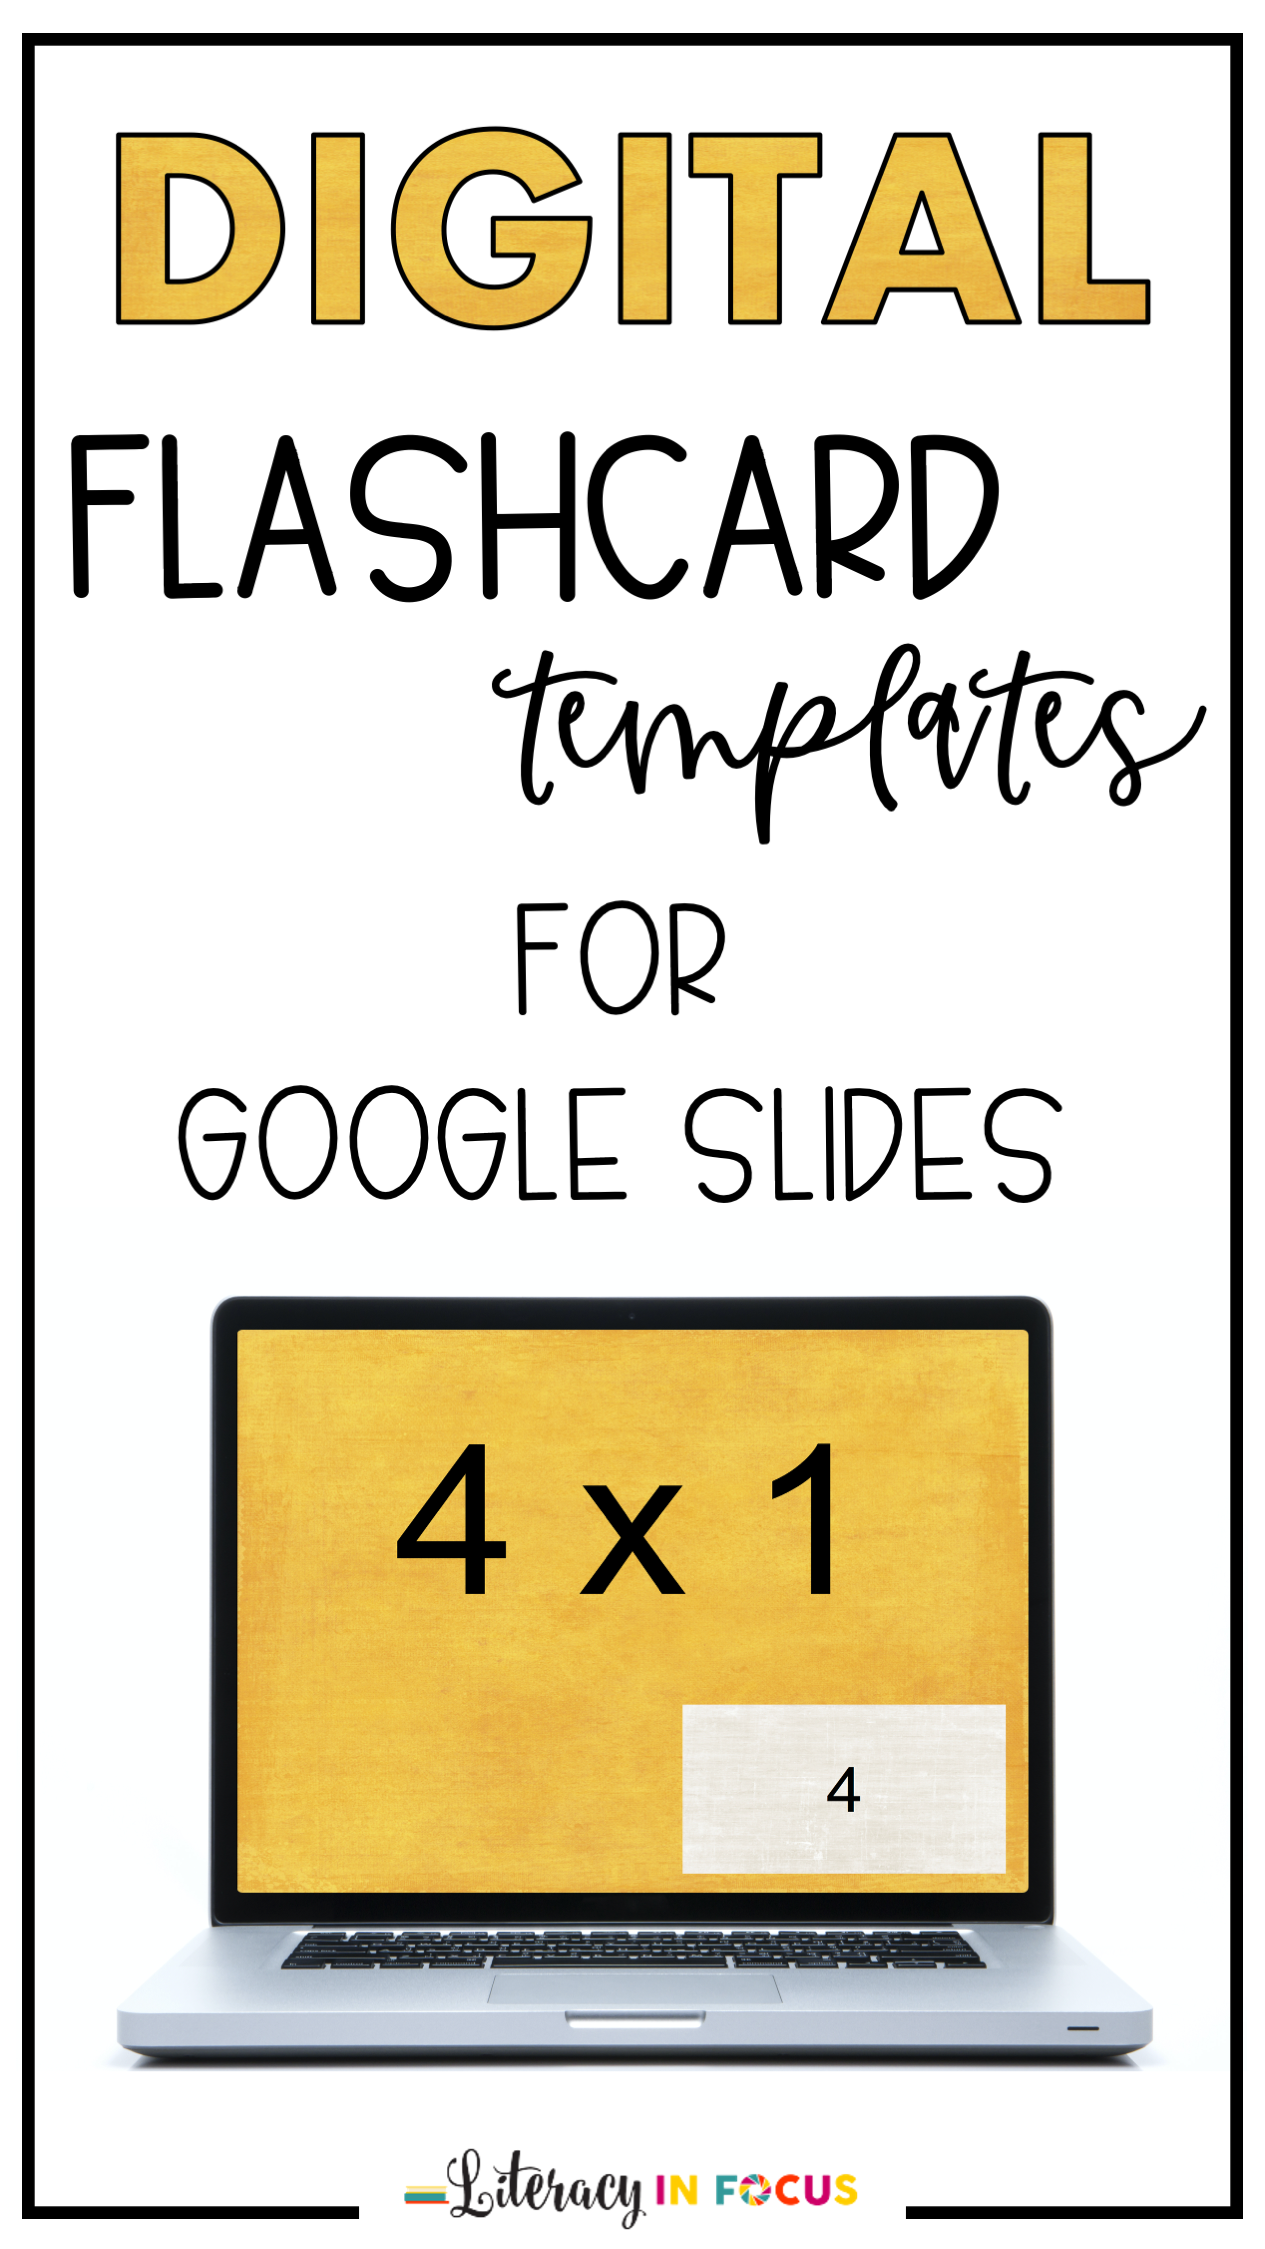 Digital Flashcard Templates Distance Learning Google Classroom Flashcards Google Classroom Teaching Multiplication Facts